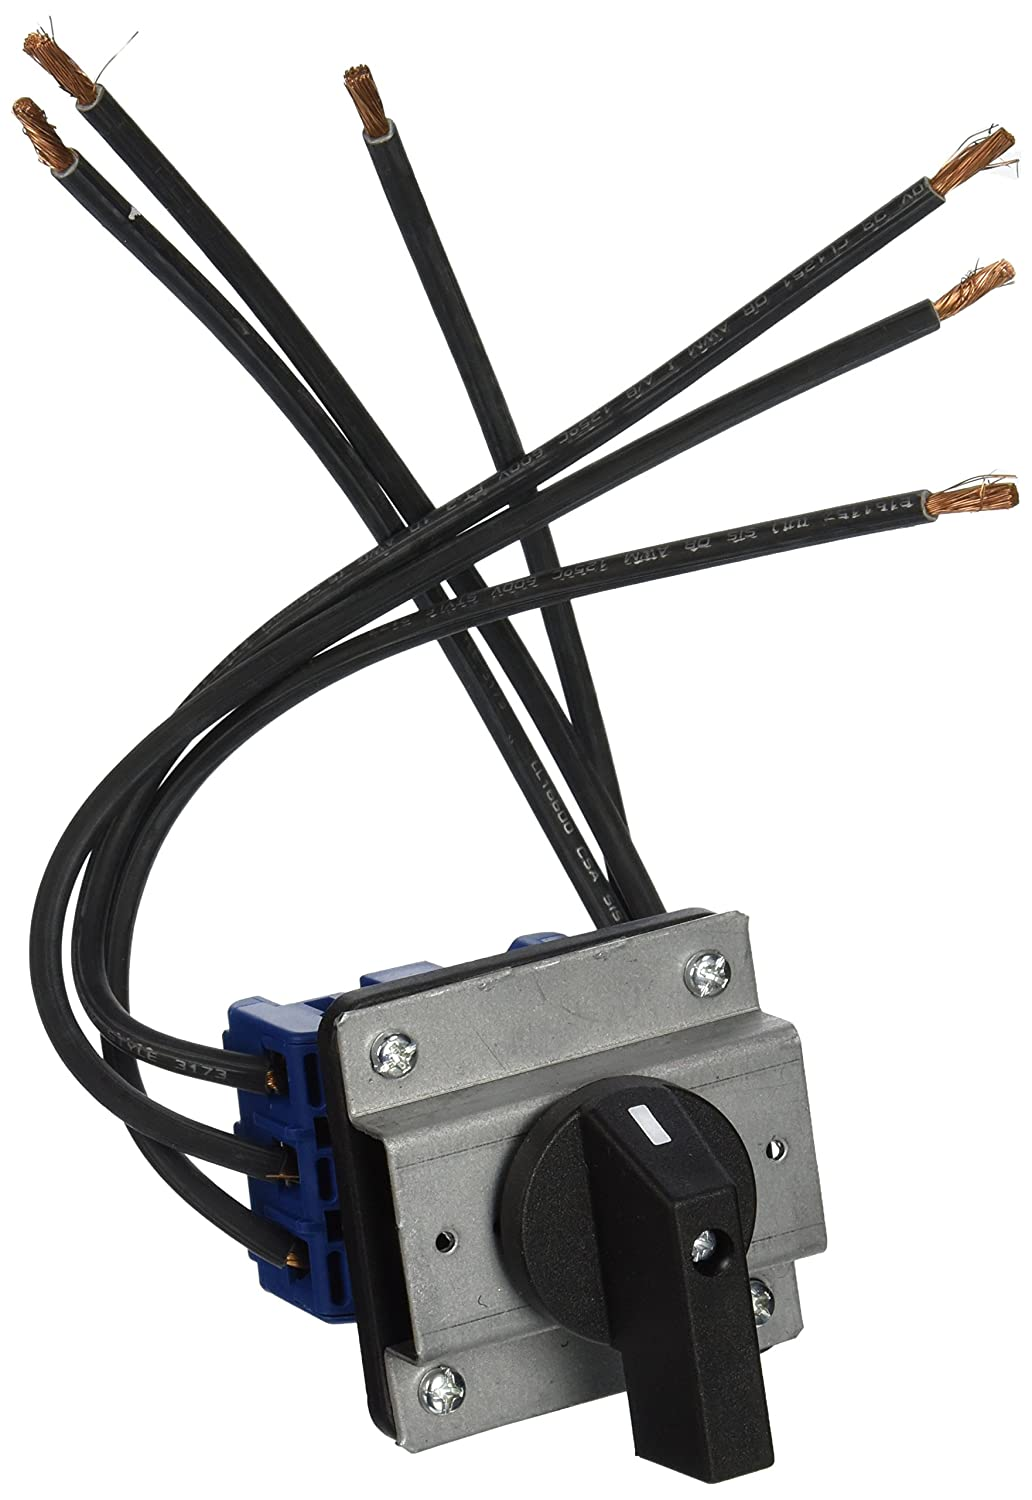 Marley MPDS25 3-Pole Disconnect Switch 25A